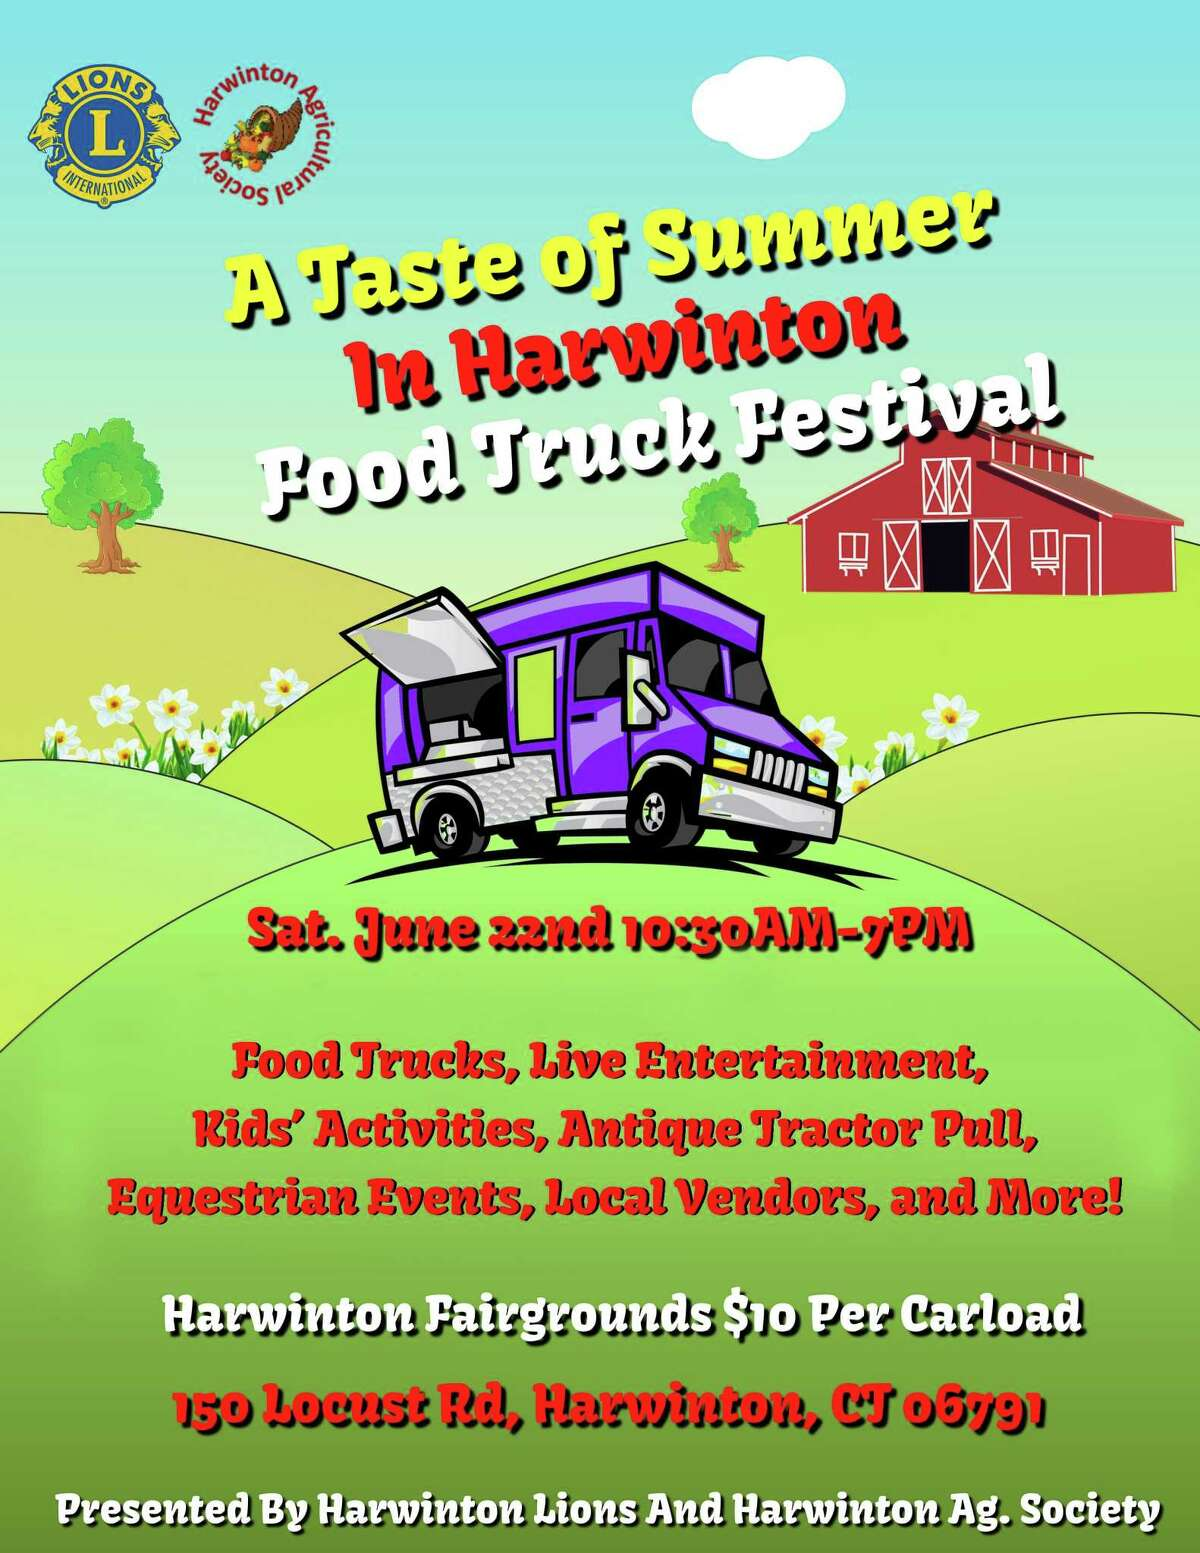 The Harwinton Lions Club and the Harwinton Agricultural Society will present Taste of Summer in Harwinton on Saturday, 10:30 a.m. to 7 p.m. at the Harwinton Fairgrounds, 150 Locust Road.